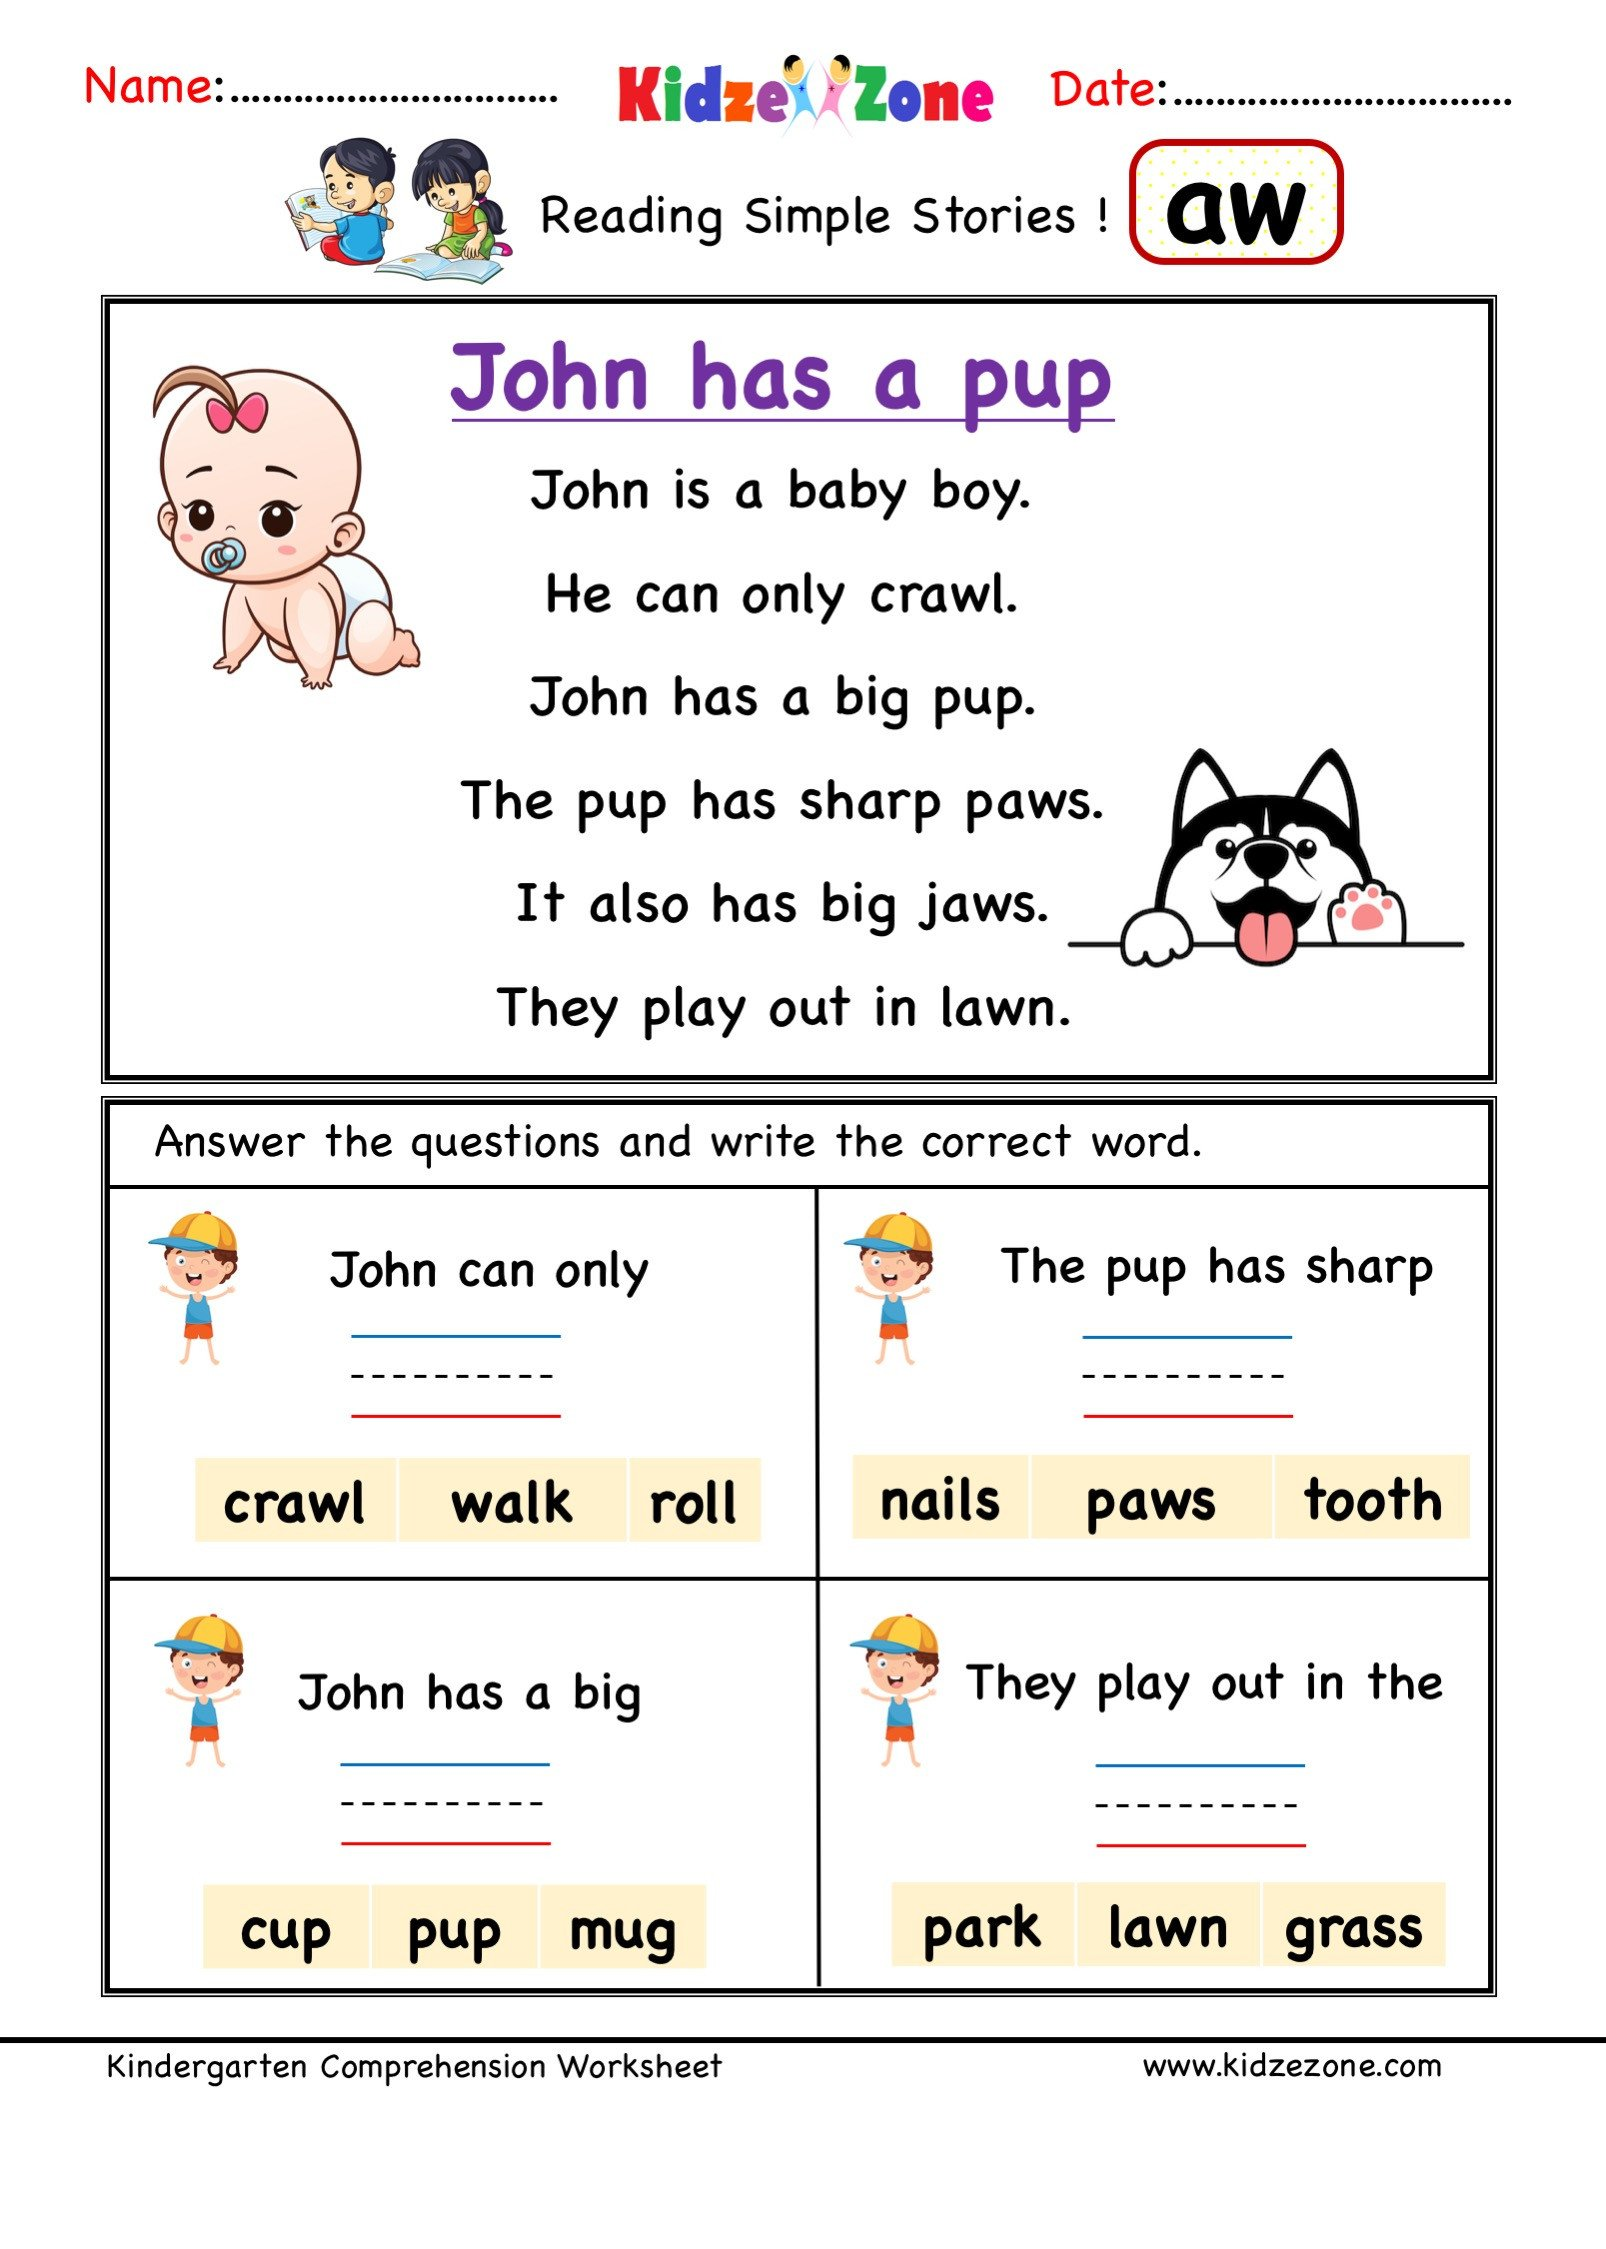 Ccvc Words Worksheets Kindergarten Kindergarten Worksheets Aw Word Family Prehension 2